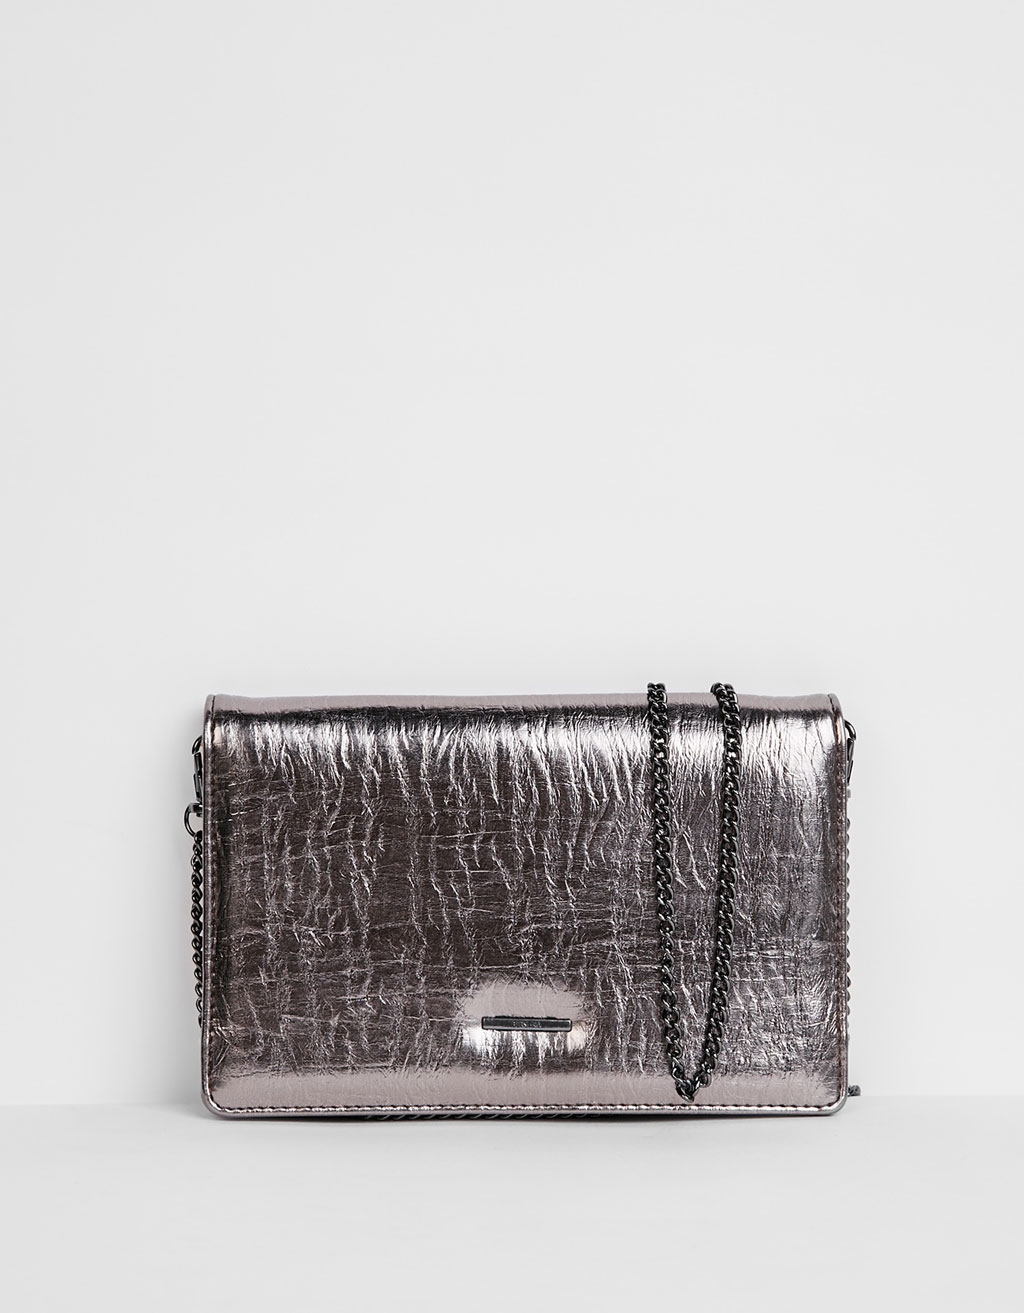 Monedero clutch metalizado cadena